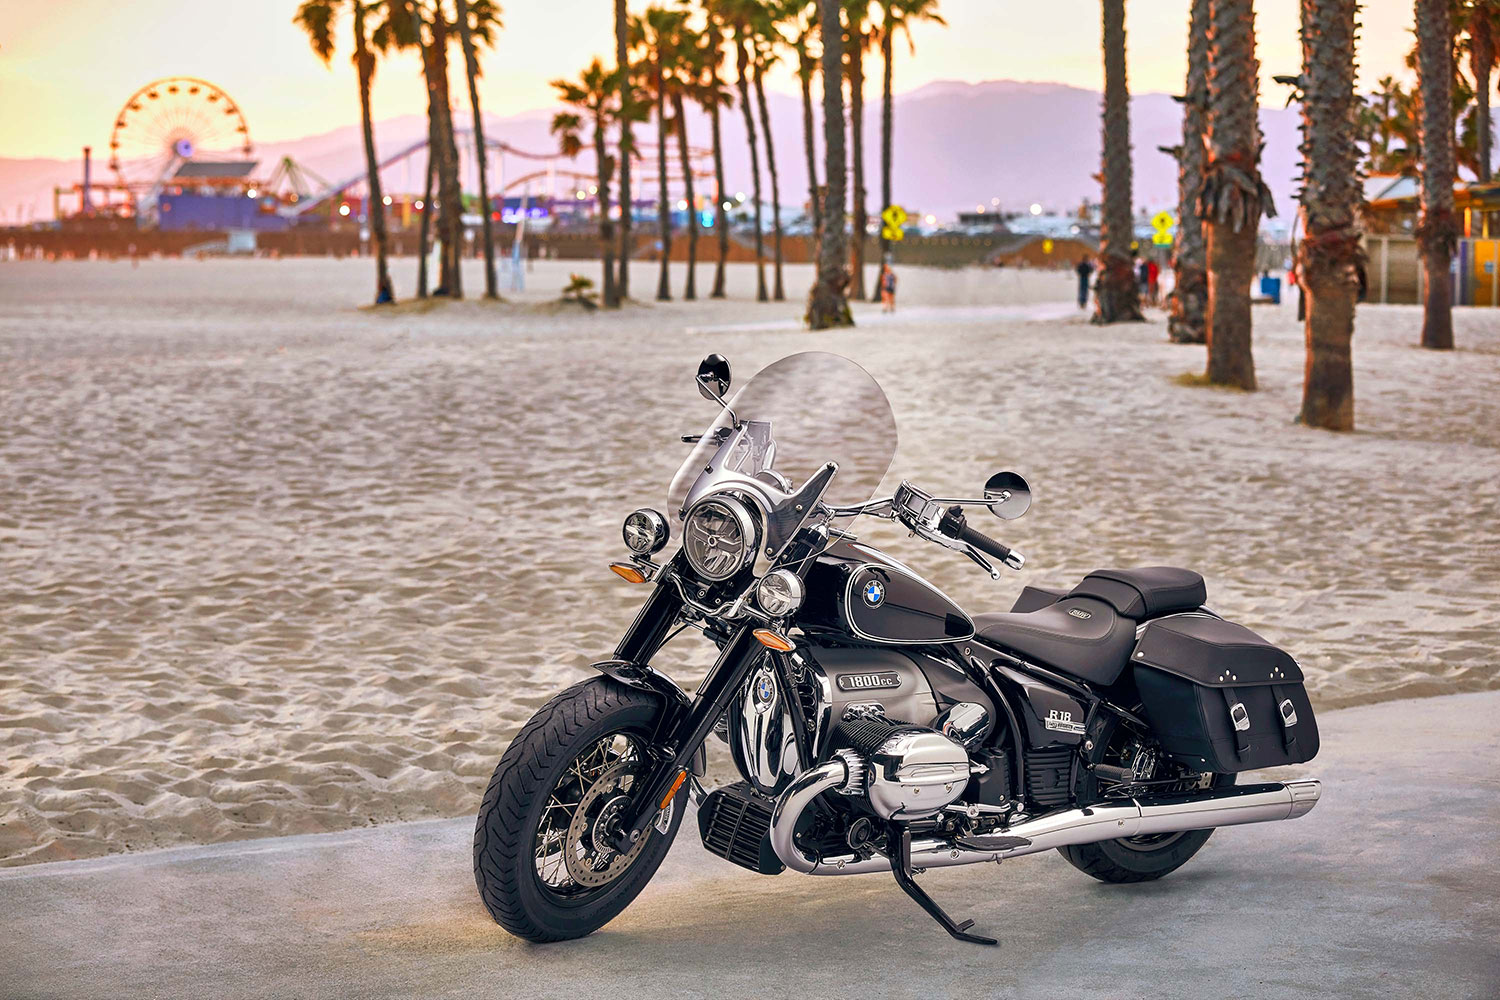 BMW Motorrad unveiled the Classic version of the BMW R 18